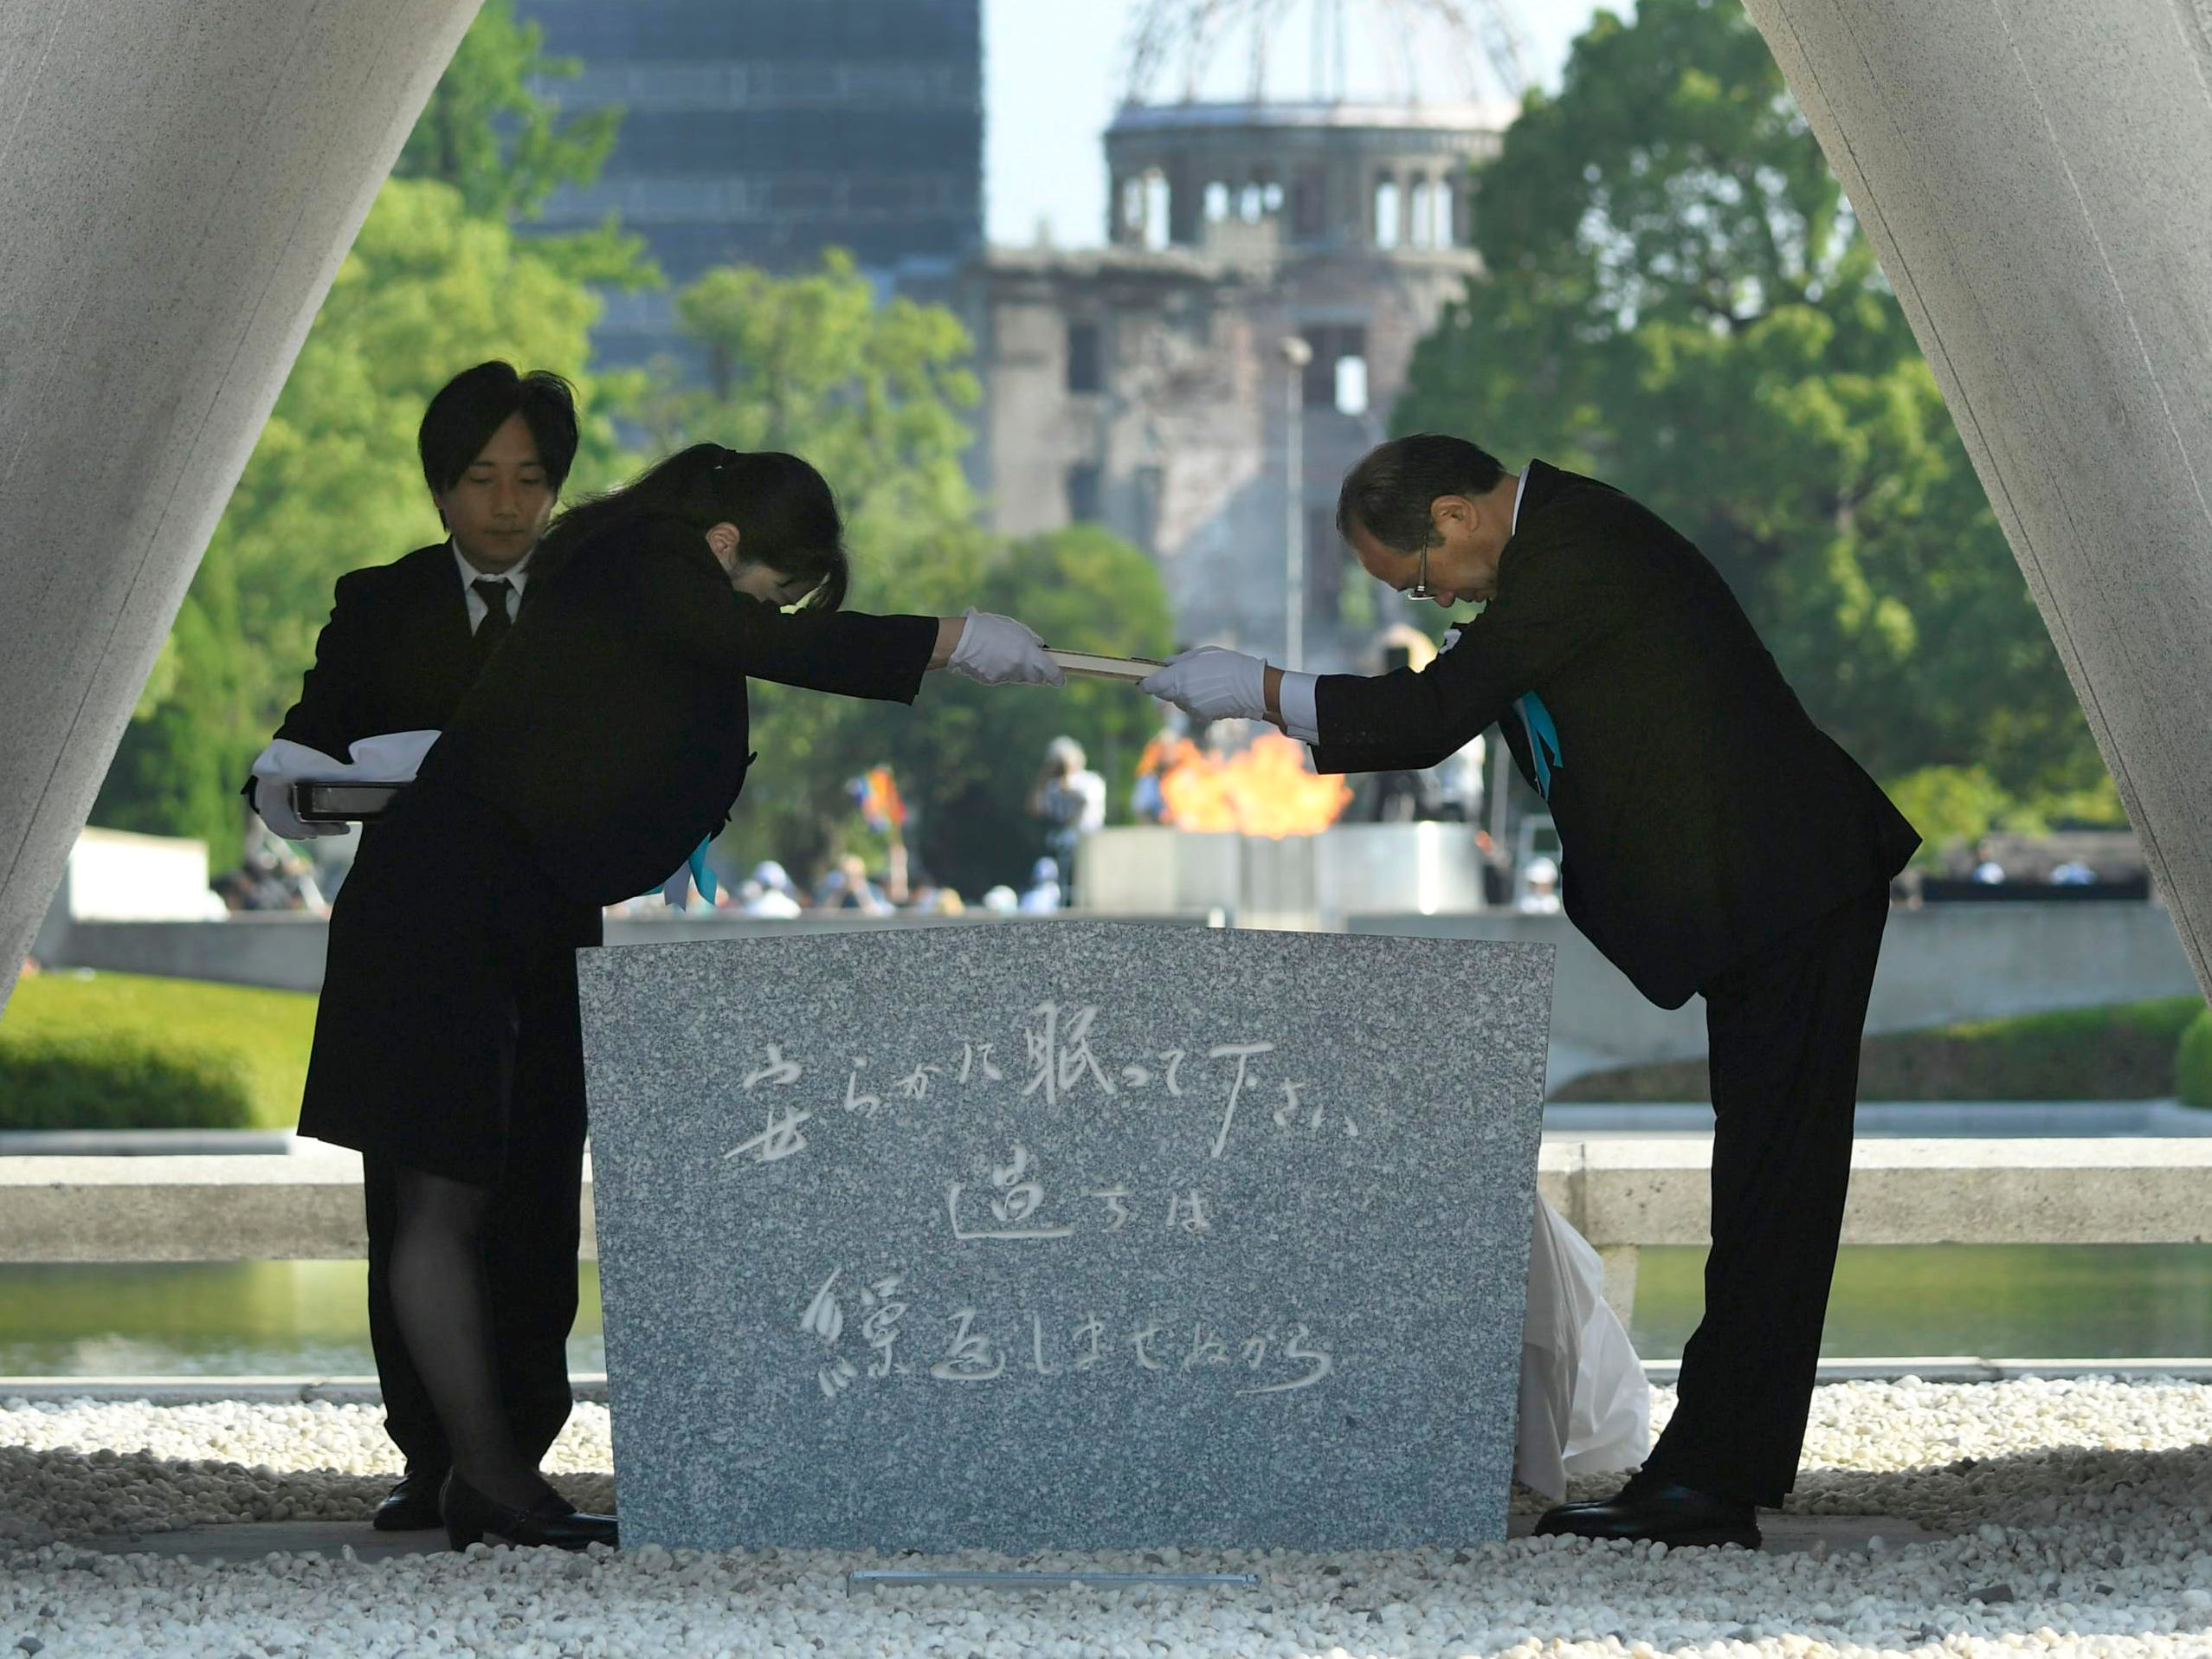 Hiroshima Mayor Kazumi Matsui, right, dedicates the list of the victims of atomic bombing to the cenotaph during a ceremony to mark the 73rd anniversary of the bombing at Hiroshima Peace Memorial Park in Hiroshima, western Japan, Monday, Aug. 6, 2018. Matsui raised concerns in his peace address about the rise of egocentric policies in the world and warned against the idea of nuclear deterrence as a threat to global security.